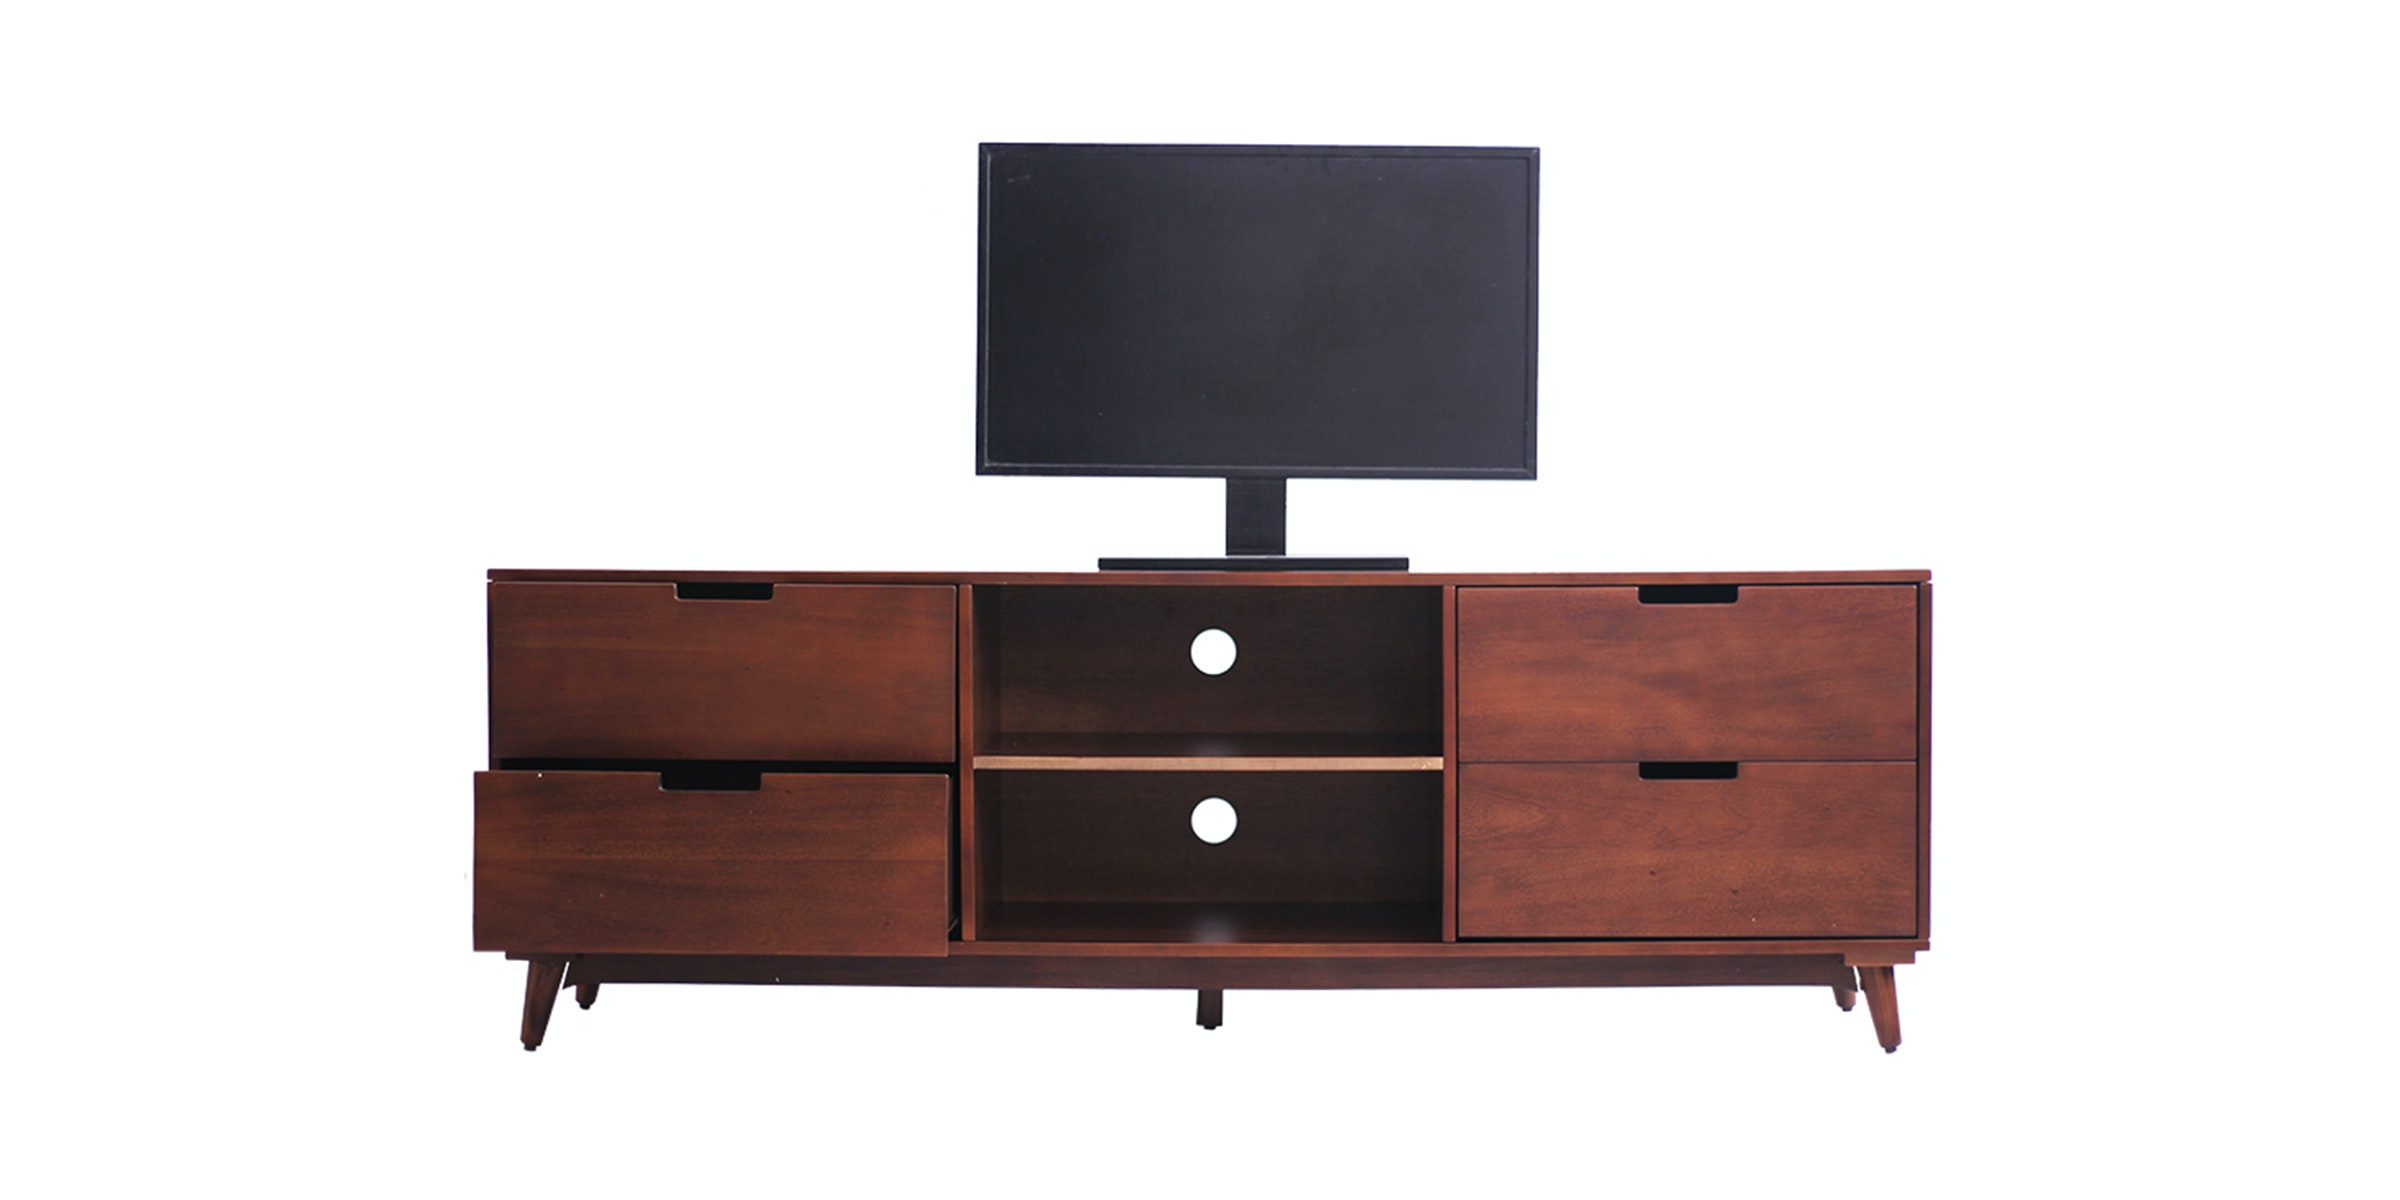 Thema Home Tv Stand Rondane Skandi Walnut Integ